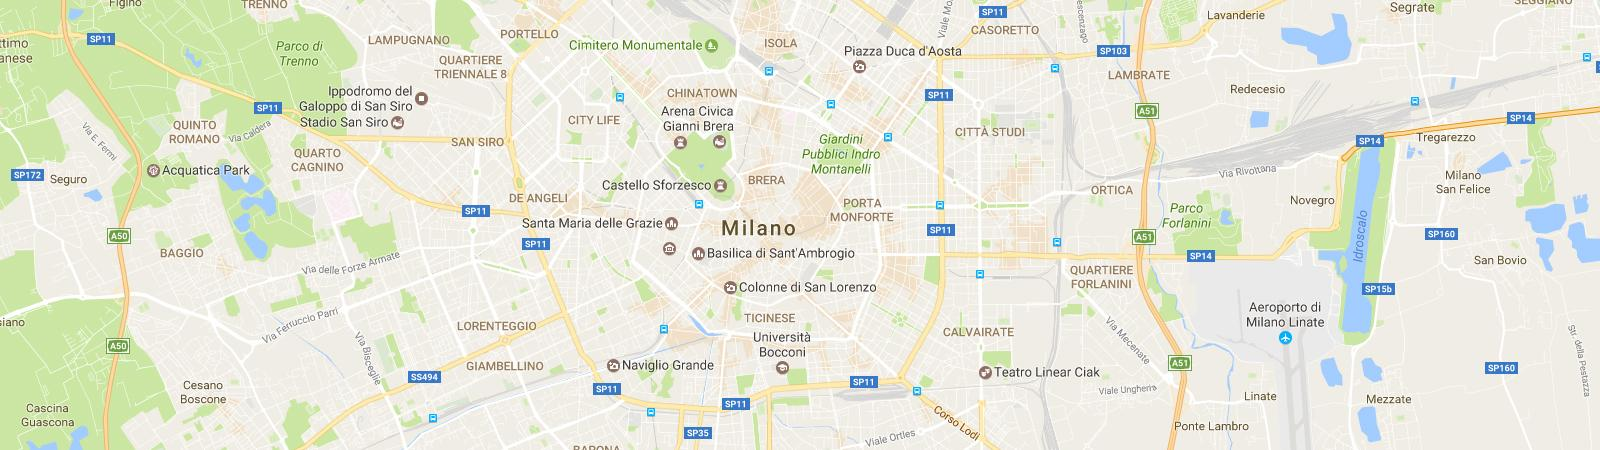 carsharing_city-page-business-area_IT IT Milan